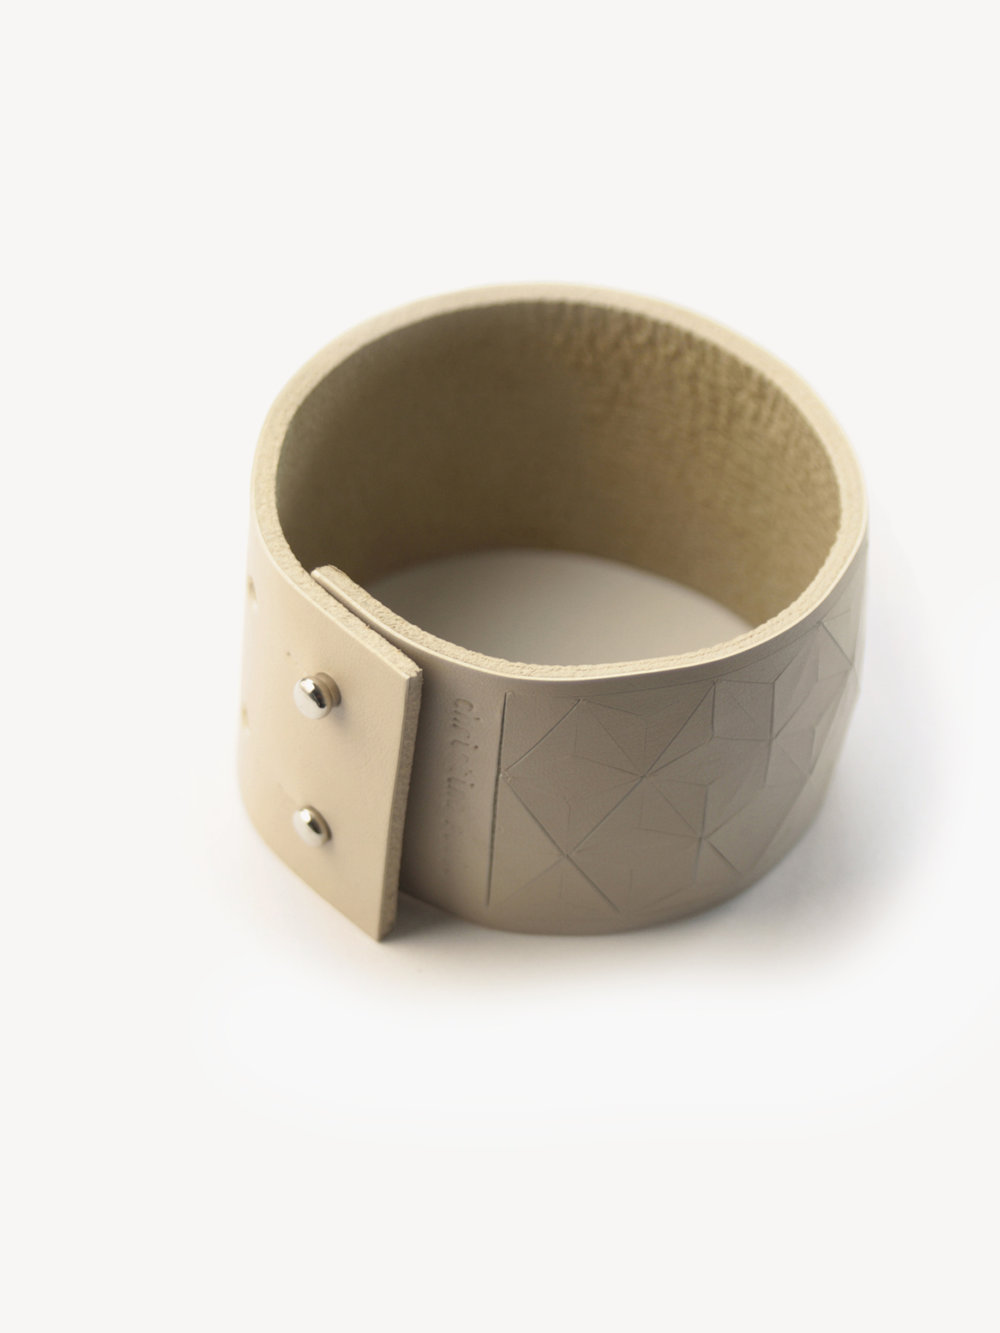 Leder-Armband, schmal in puder/ Leather bracelet, big in nude